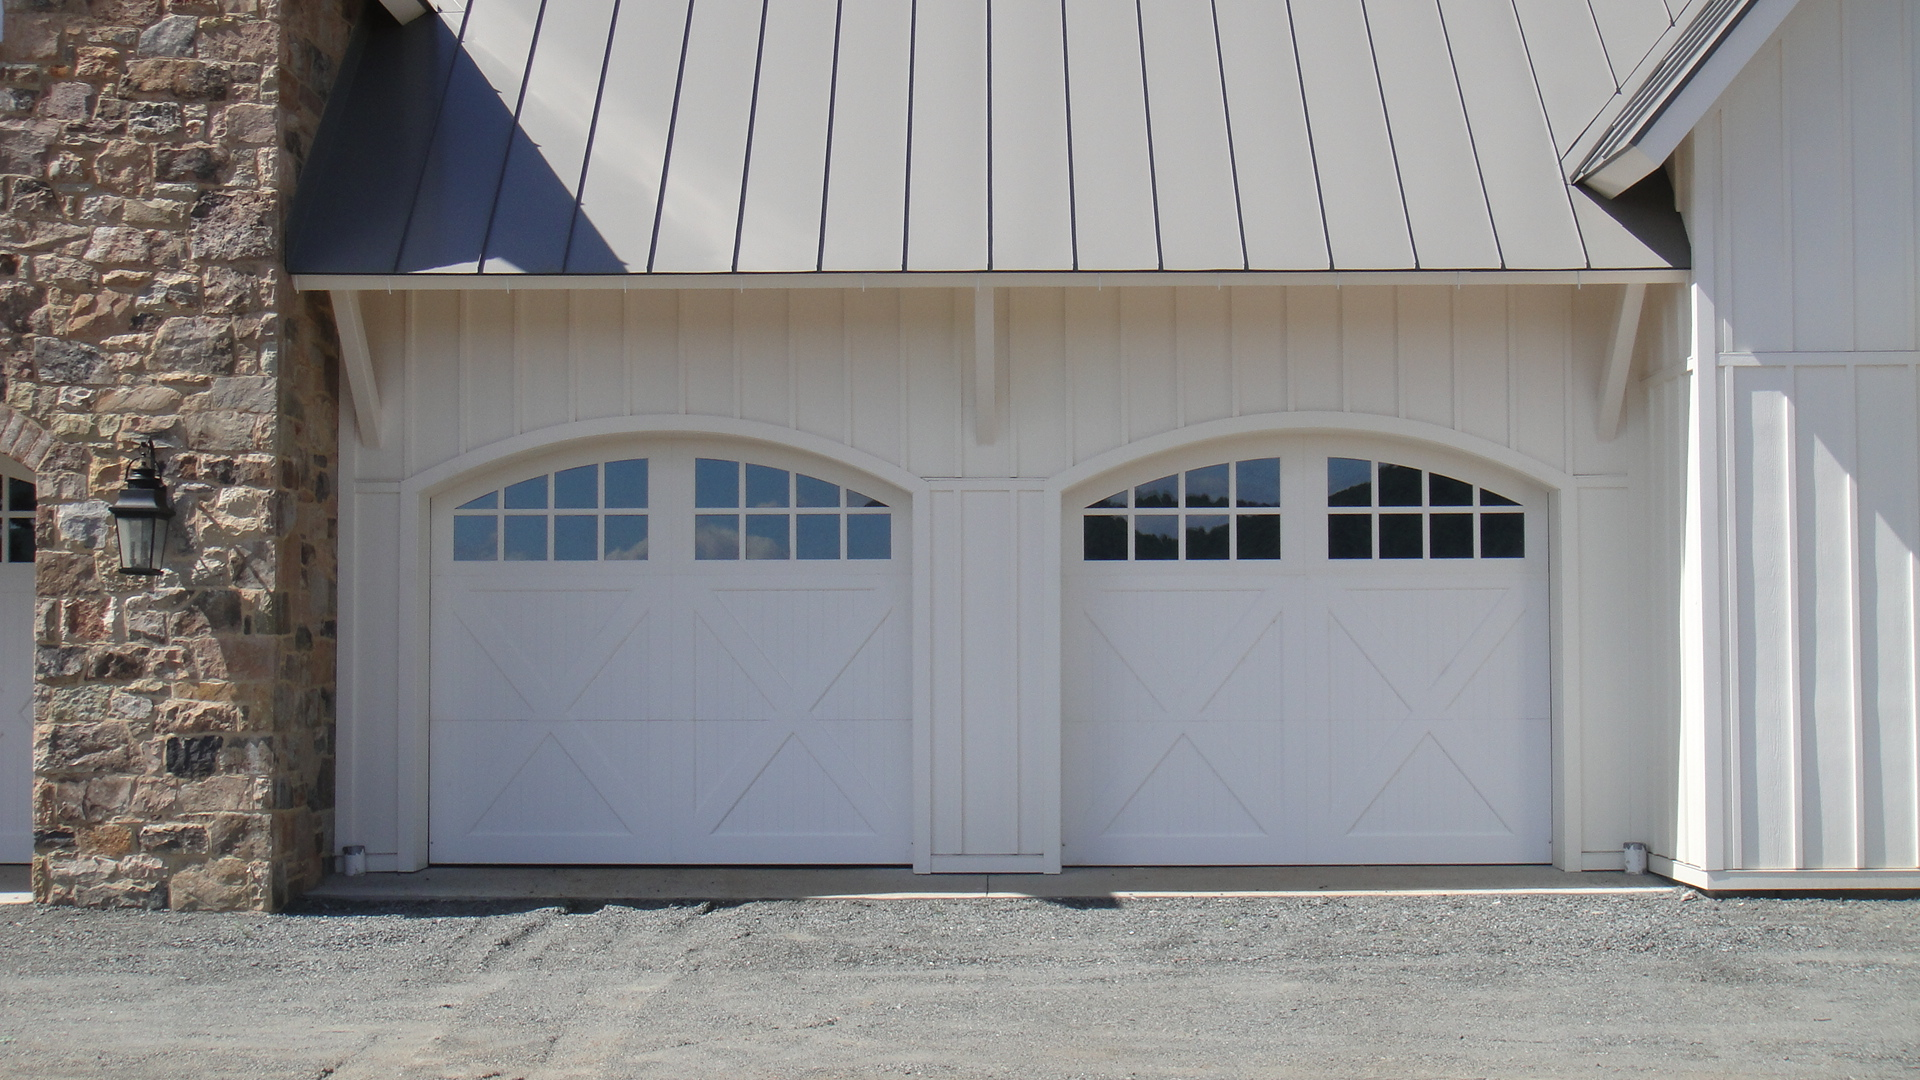 1080 #45596D Clingerman Doors Custom Wood Garage Doors Clearville PA wallpaper Custom Garage Doors 38351920